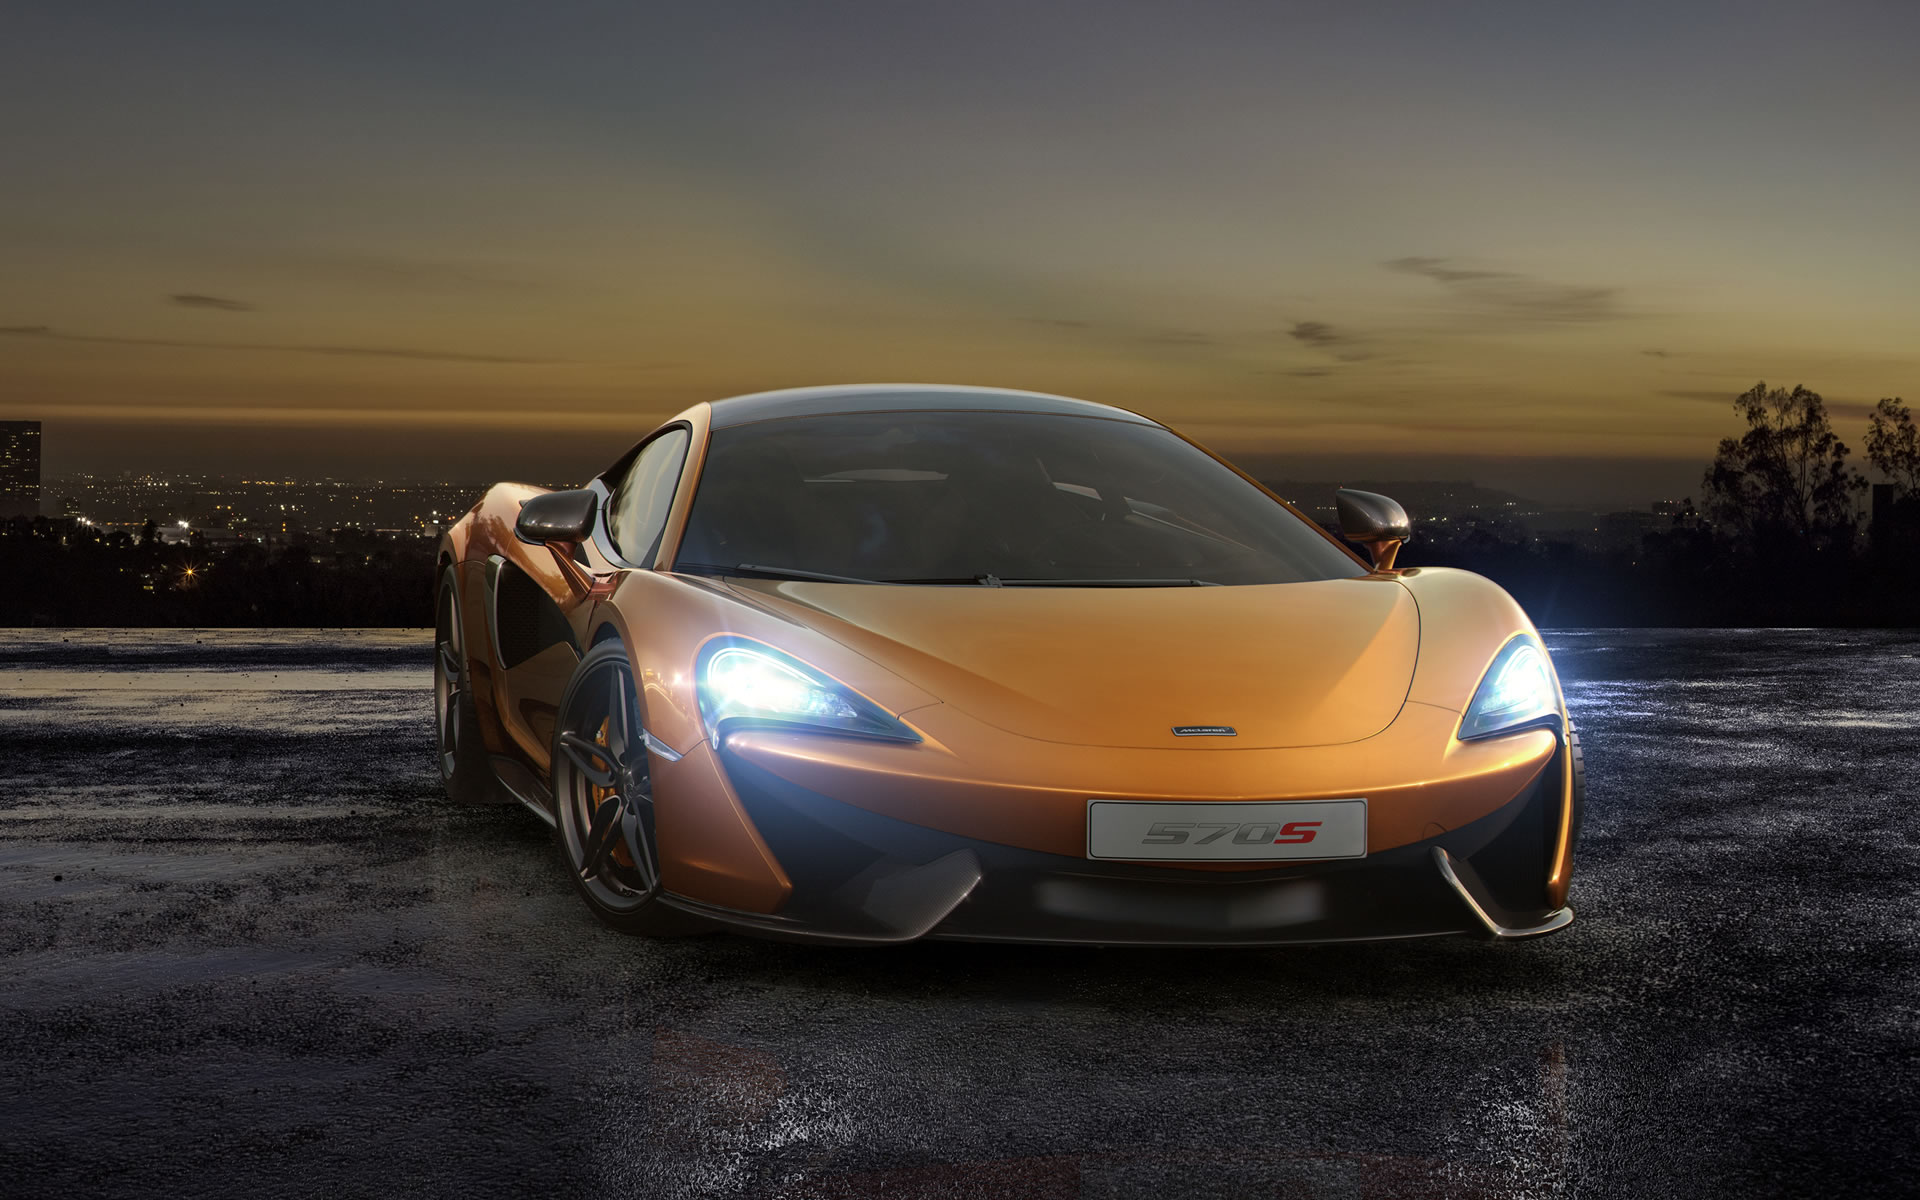 2016 McLaren 570S Coupe Wallpaper - 1920 x 1200